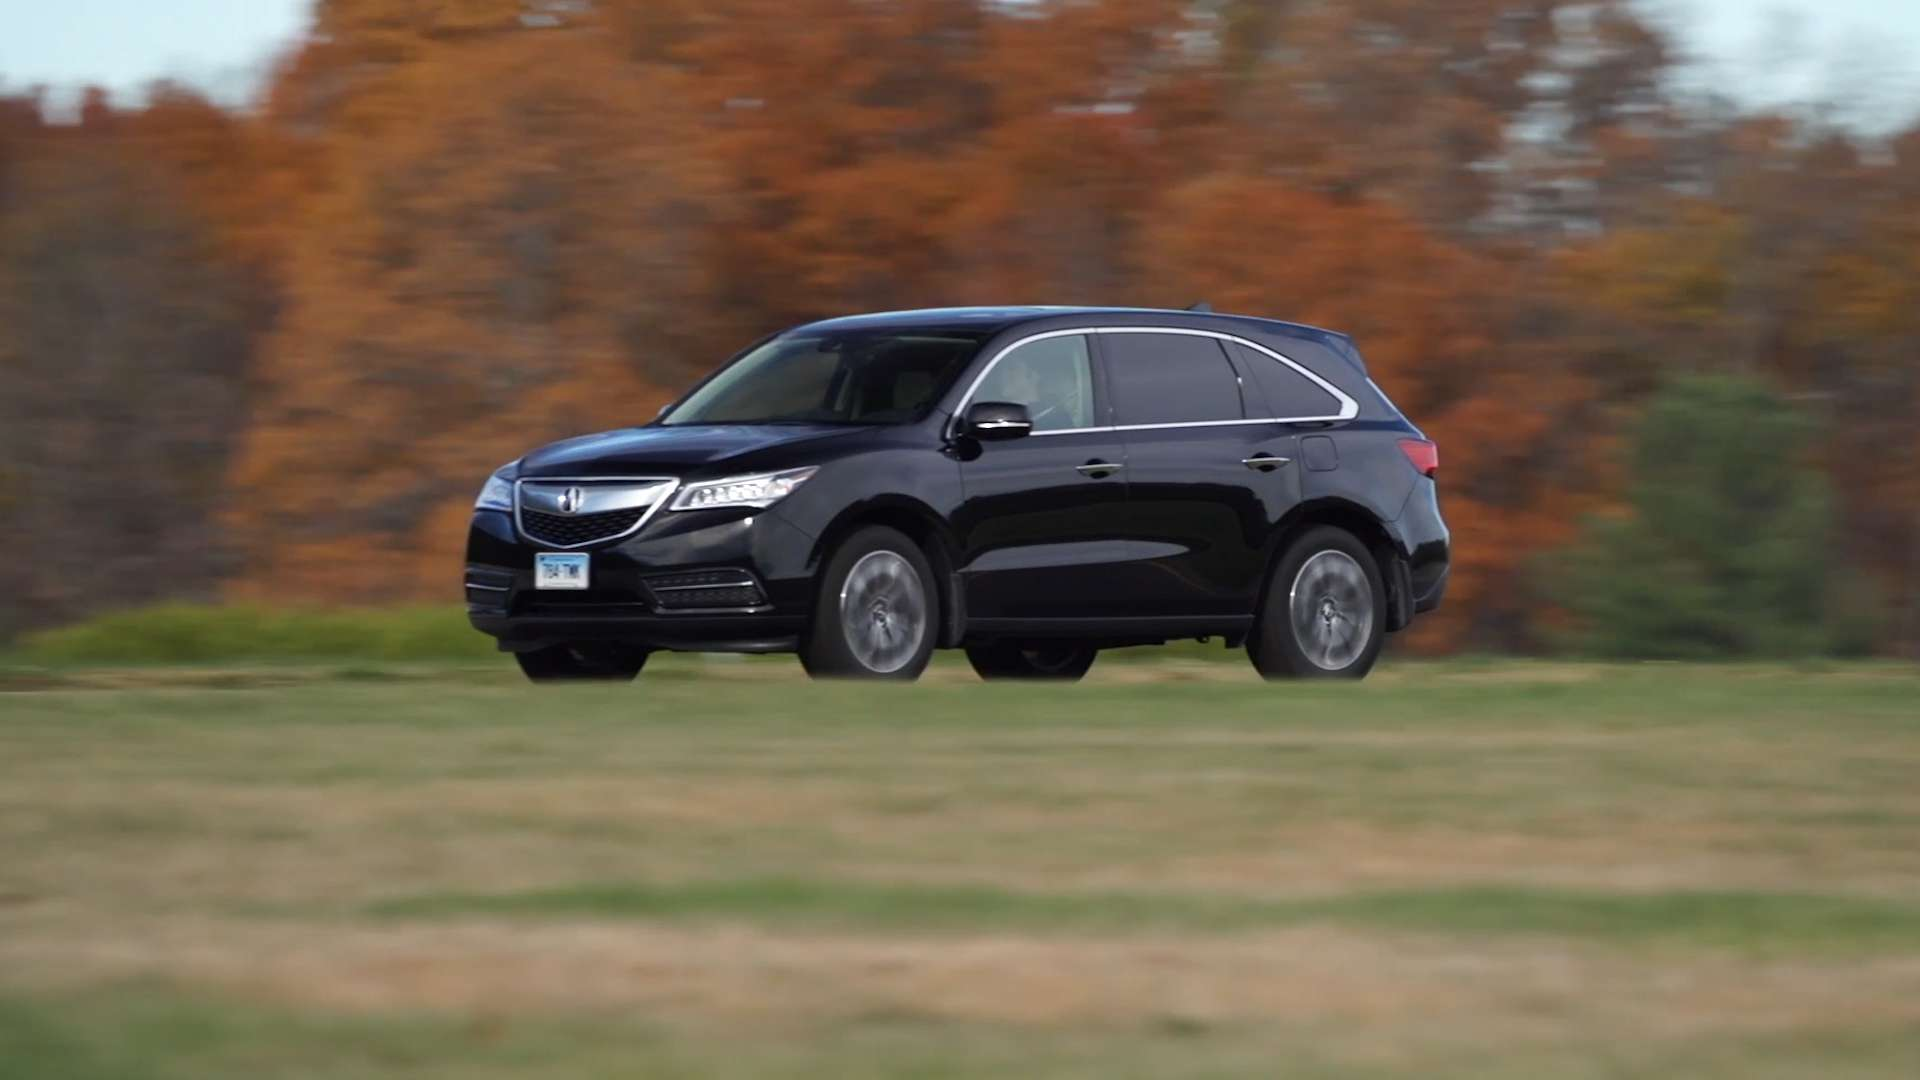 Acura MDX Reviews Ratings Prices Consumer Reports - Acura mdx rebuilt transmission